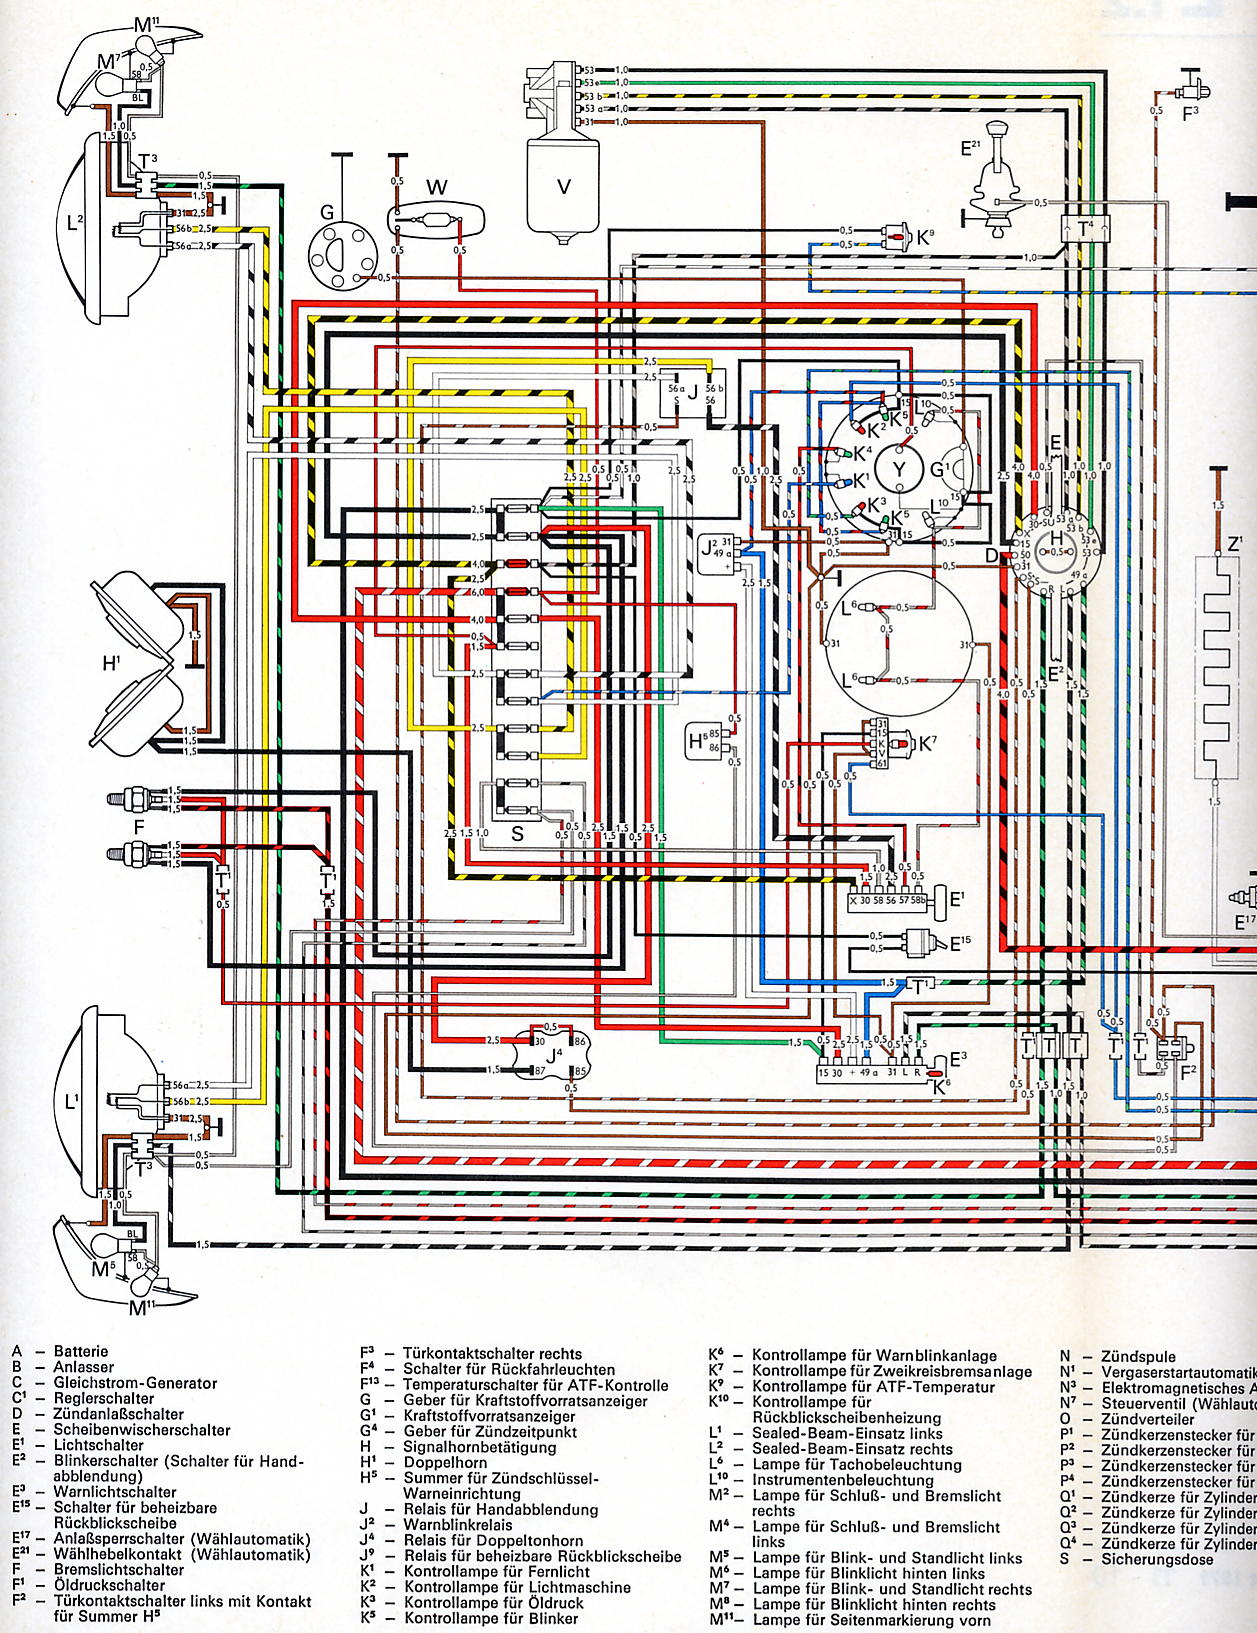 Karmann_Ghia_USA_from_August_1971 1 audi a3 2009 wiring diagram wiring diagram shrutiradio audi a2 wiring diagram pdf at n-0.co